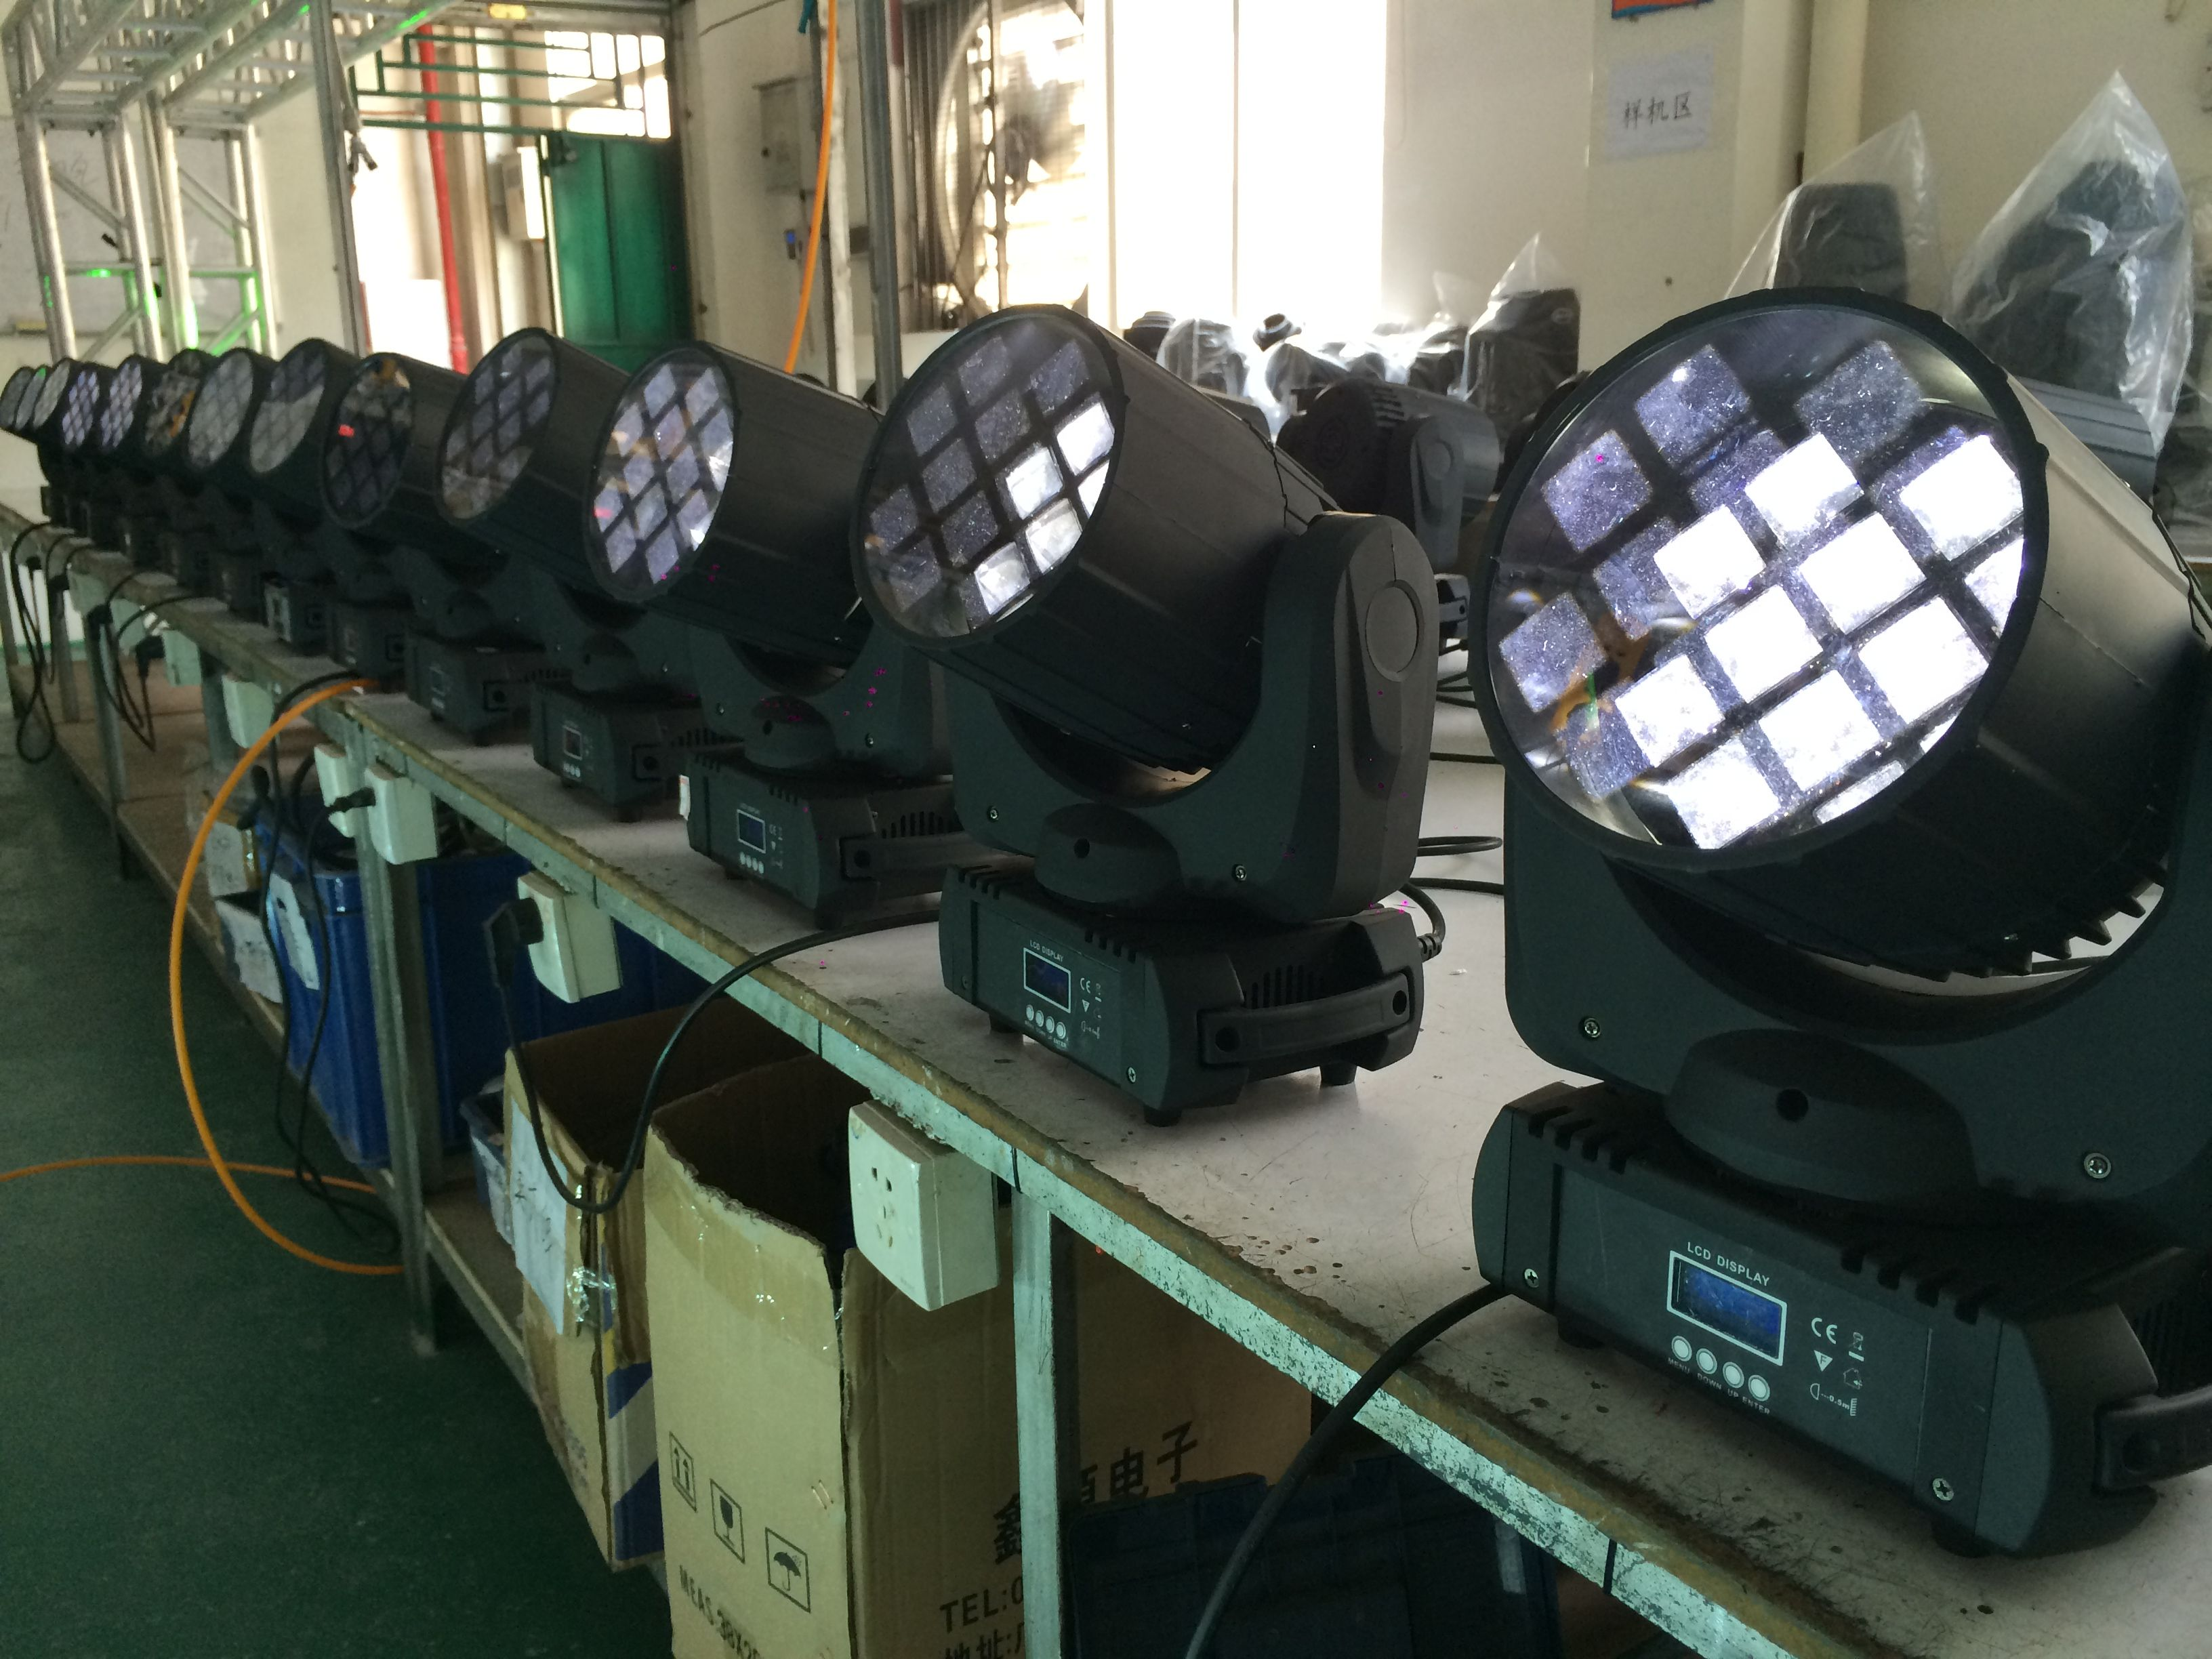 12pcs Rgbw 4 In 1 10w Cree Led Moving Head Light Https Www Facebook Com Wavelighting1 Cree Led Cree Headlights